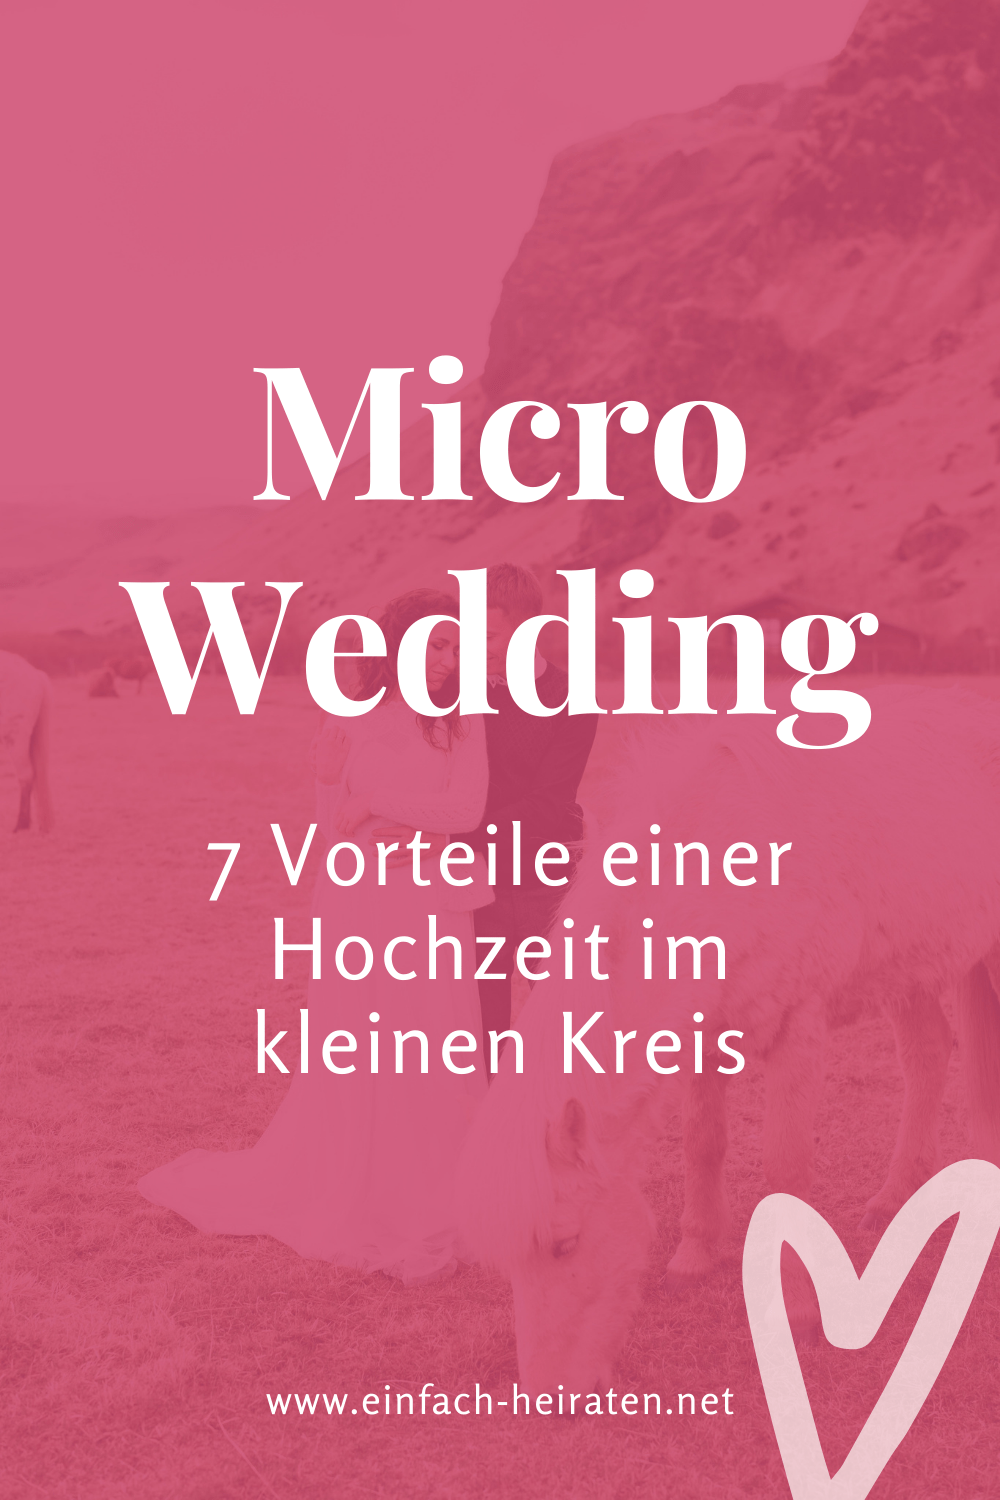 Micro Wedding feiern